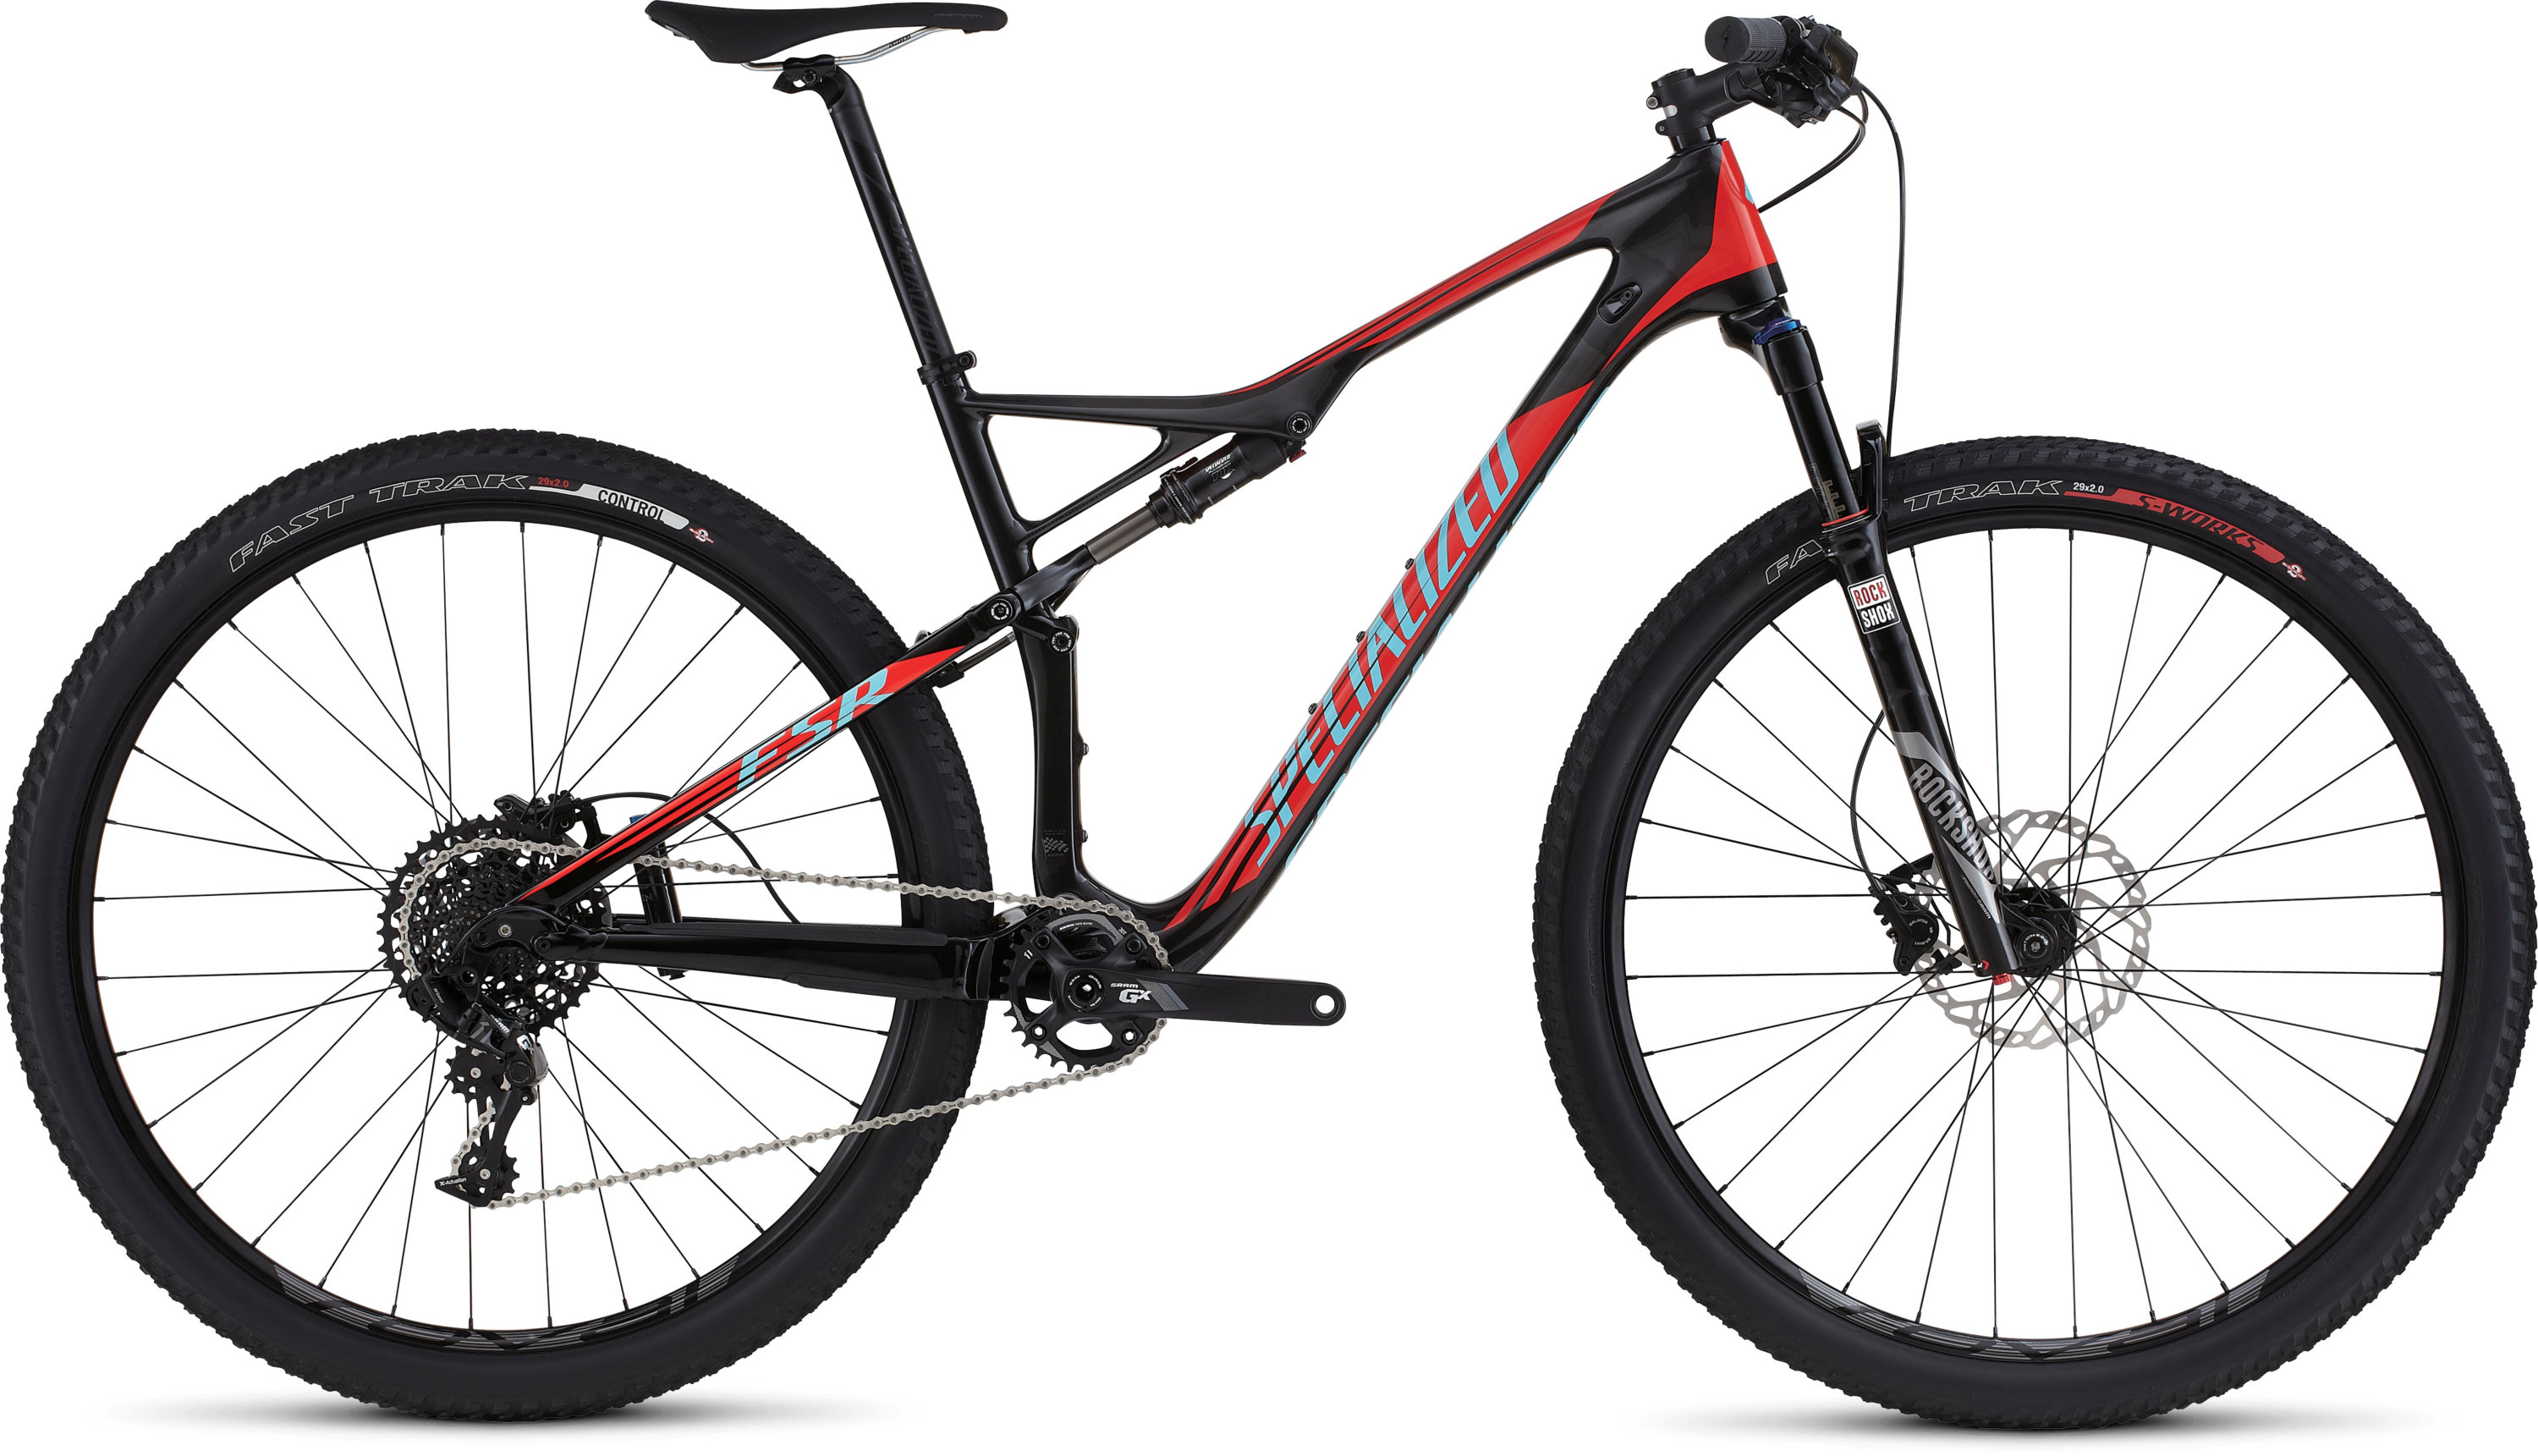 SPECIALIZED EPIC FSR COMP CARBON WC 29 CARB/RKTRED/LTBLU S - Bikedreams & Dustbikes